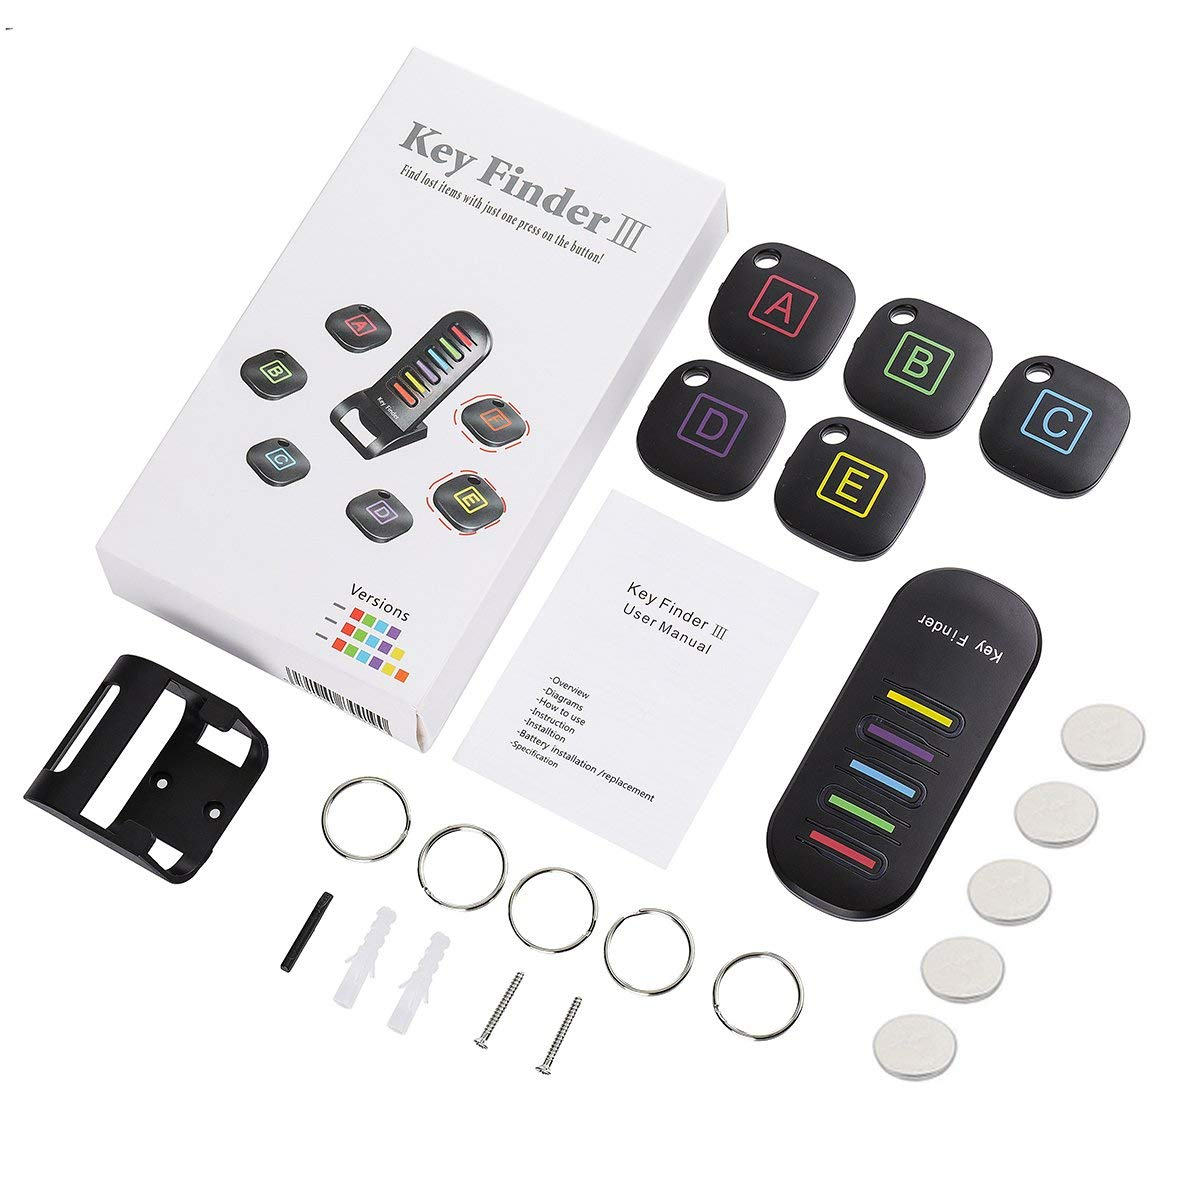 Luggage Pet Cell Phone EIVOTOR Key Finder 5 Receivers Small Things- Keychain Included Key Tracker for Key Purse Wireless Item Locator Item Tracker with Anti Lost Alarm,1 RF Transmitter